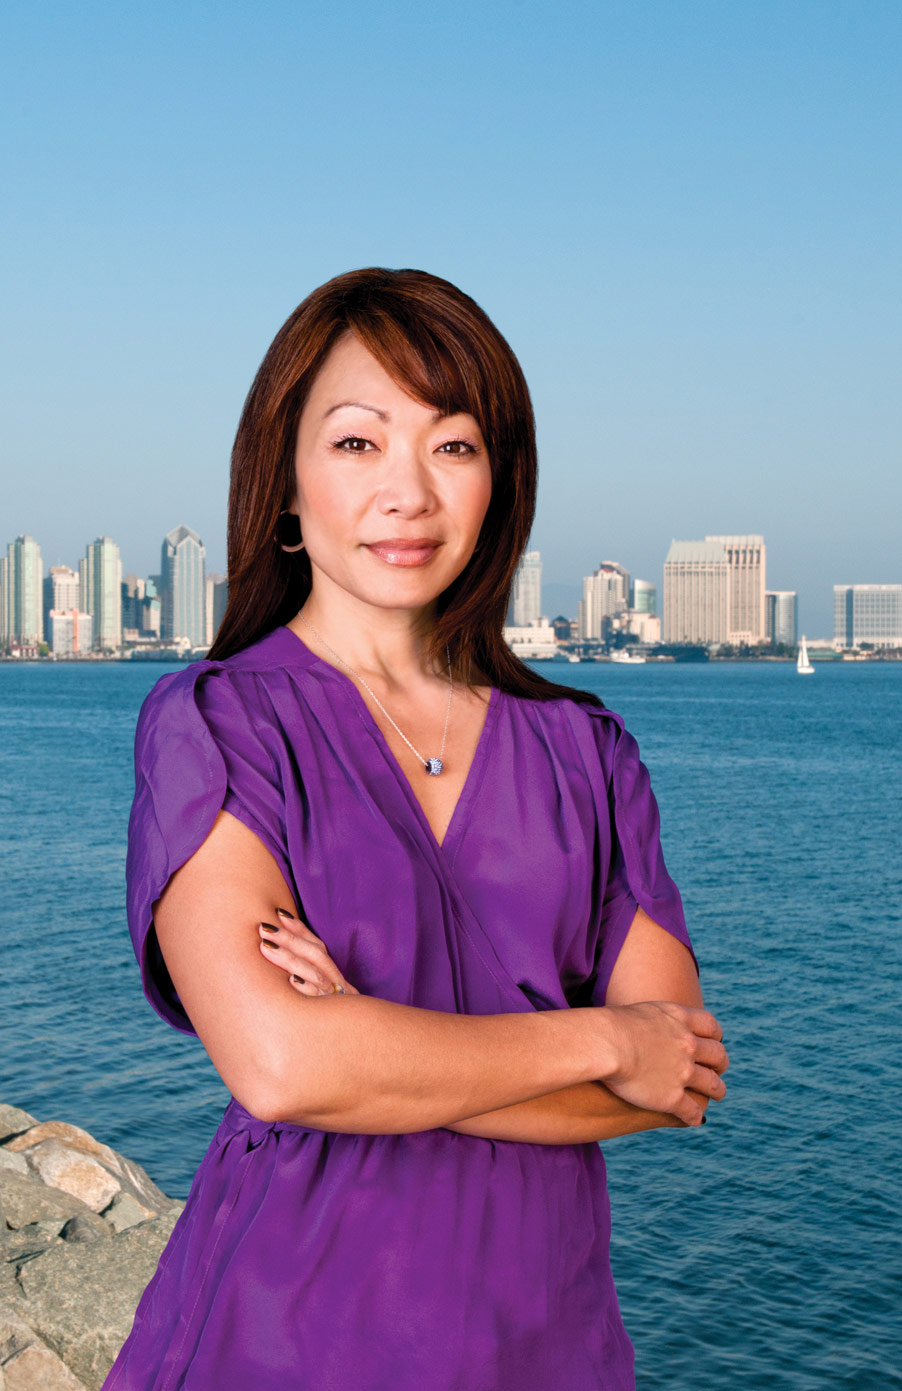 Lee Ann Kim, founder of the Pacific Arts Movement, photographed for the cover of UCSD Extension magazine